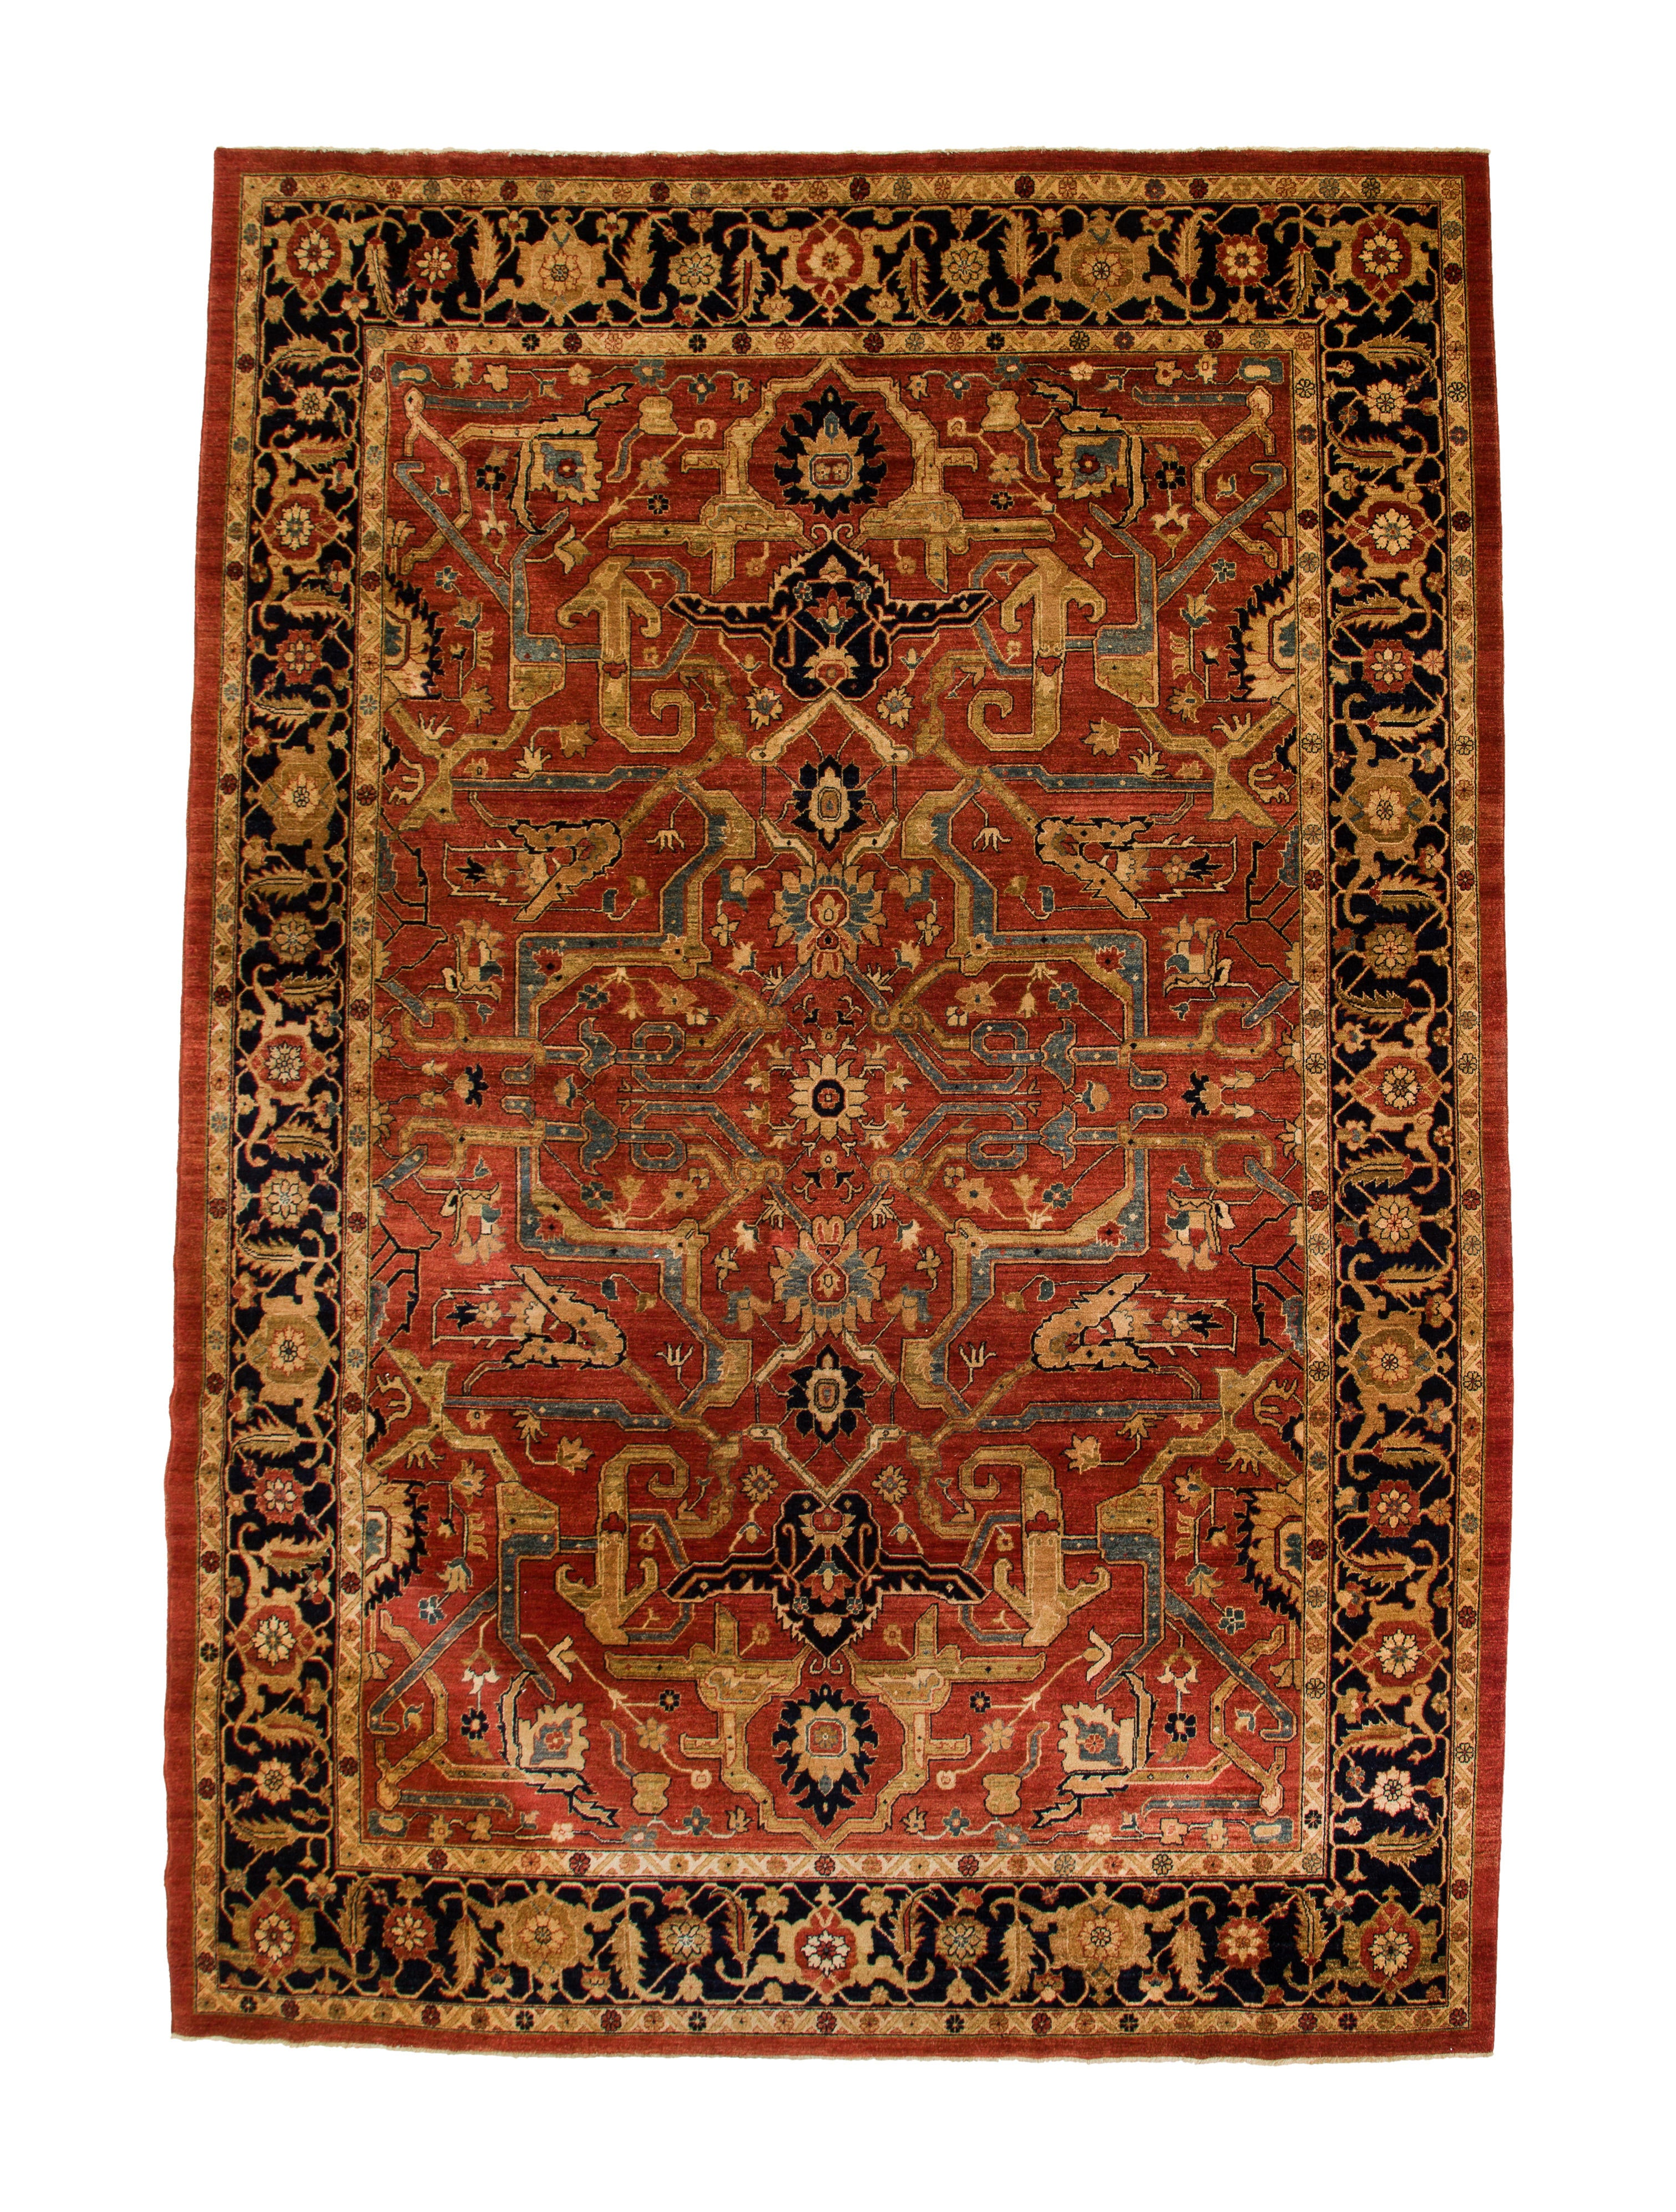 Turkish rug 13399quot x 1039 rugs rug20504 the realreal for Turkish rugs